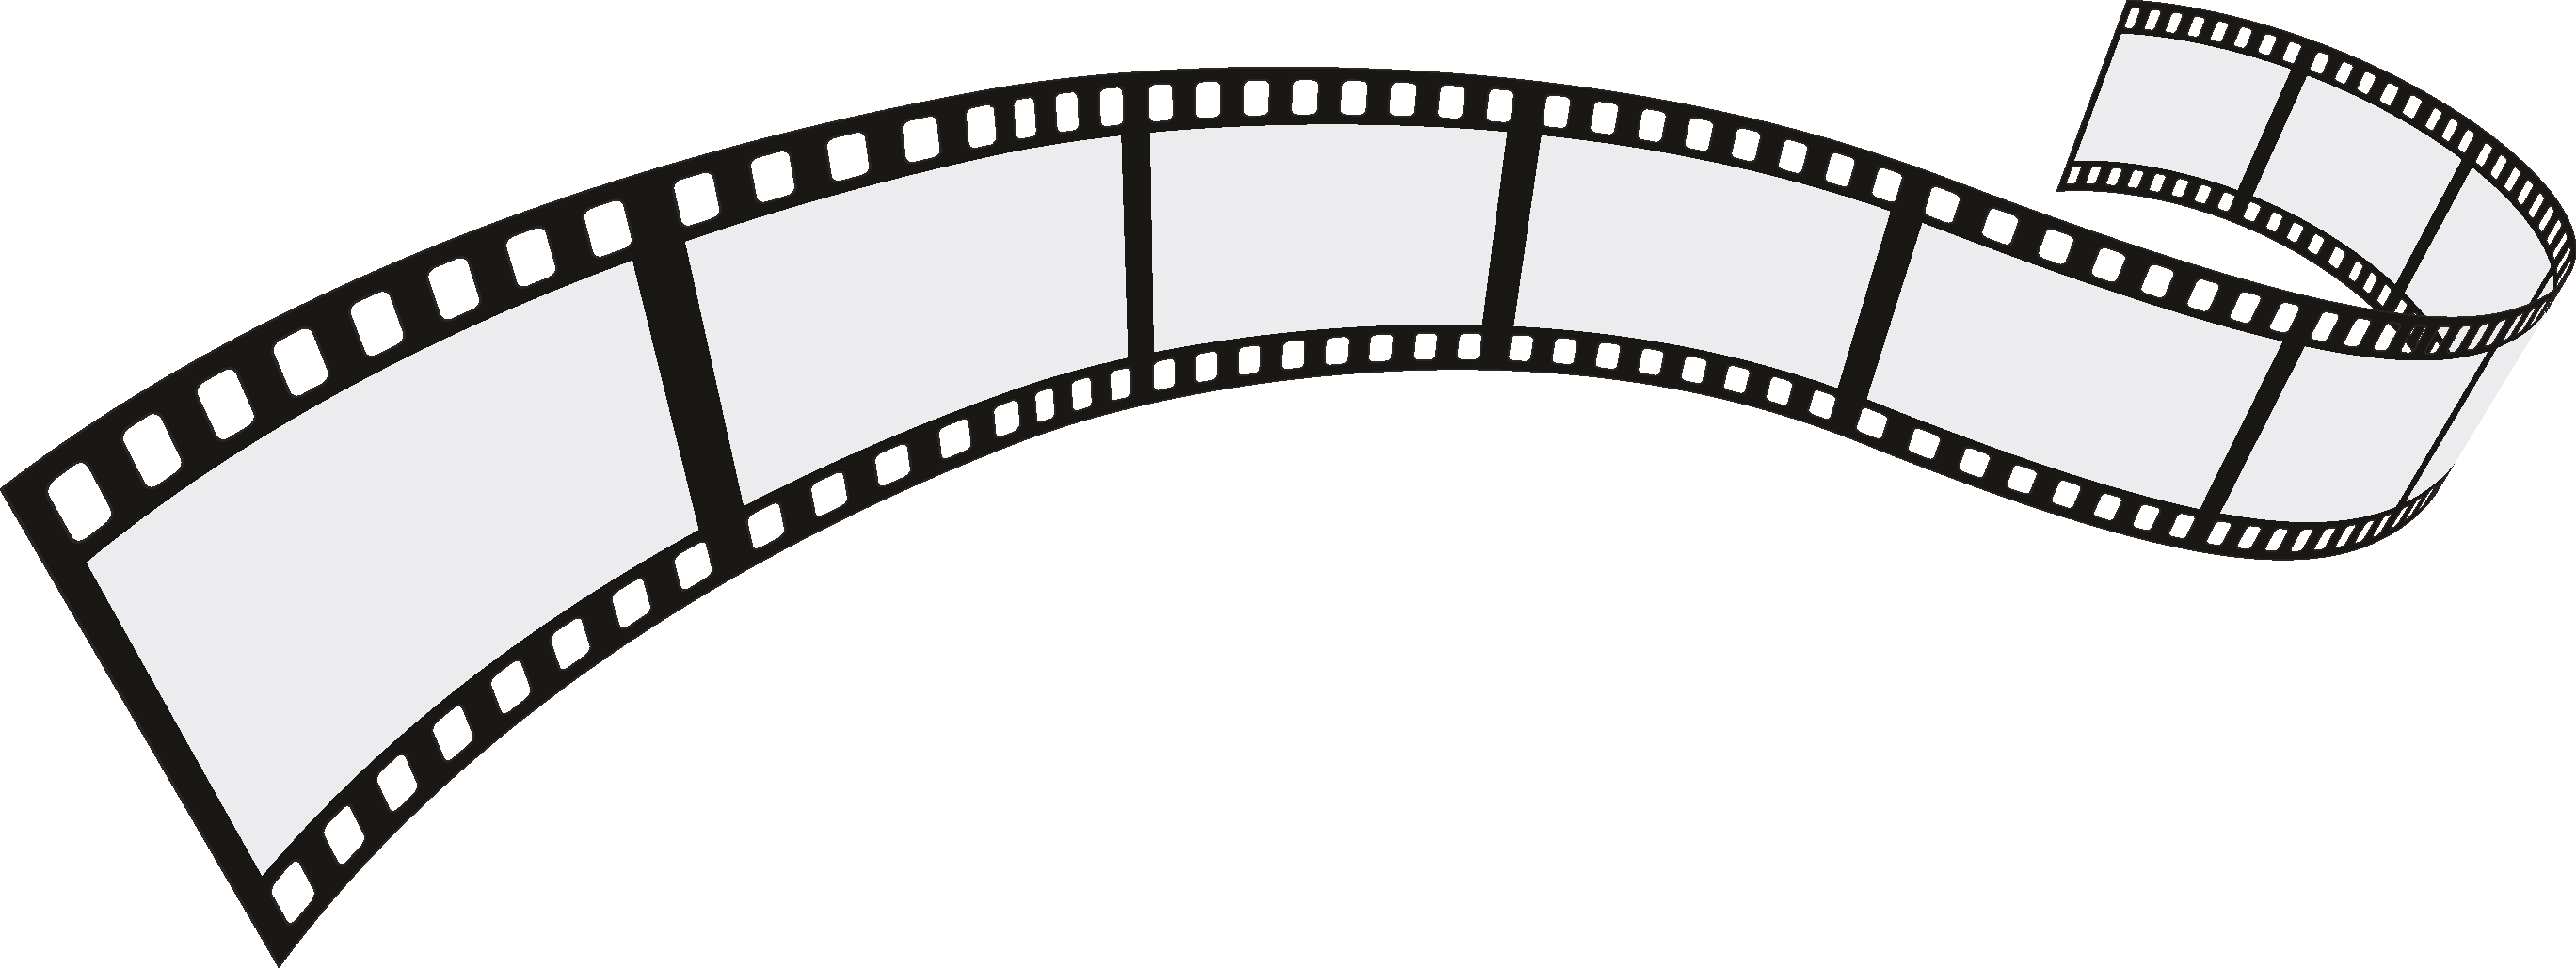 Film Strips Png.